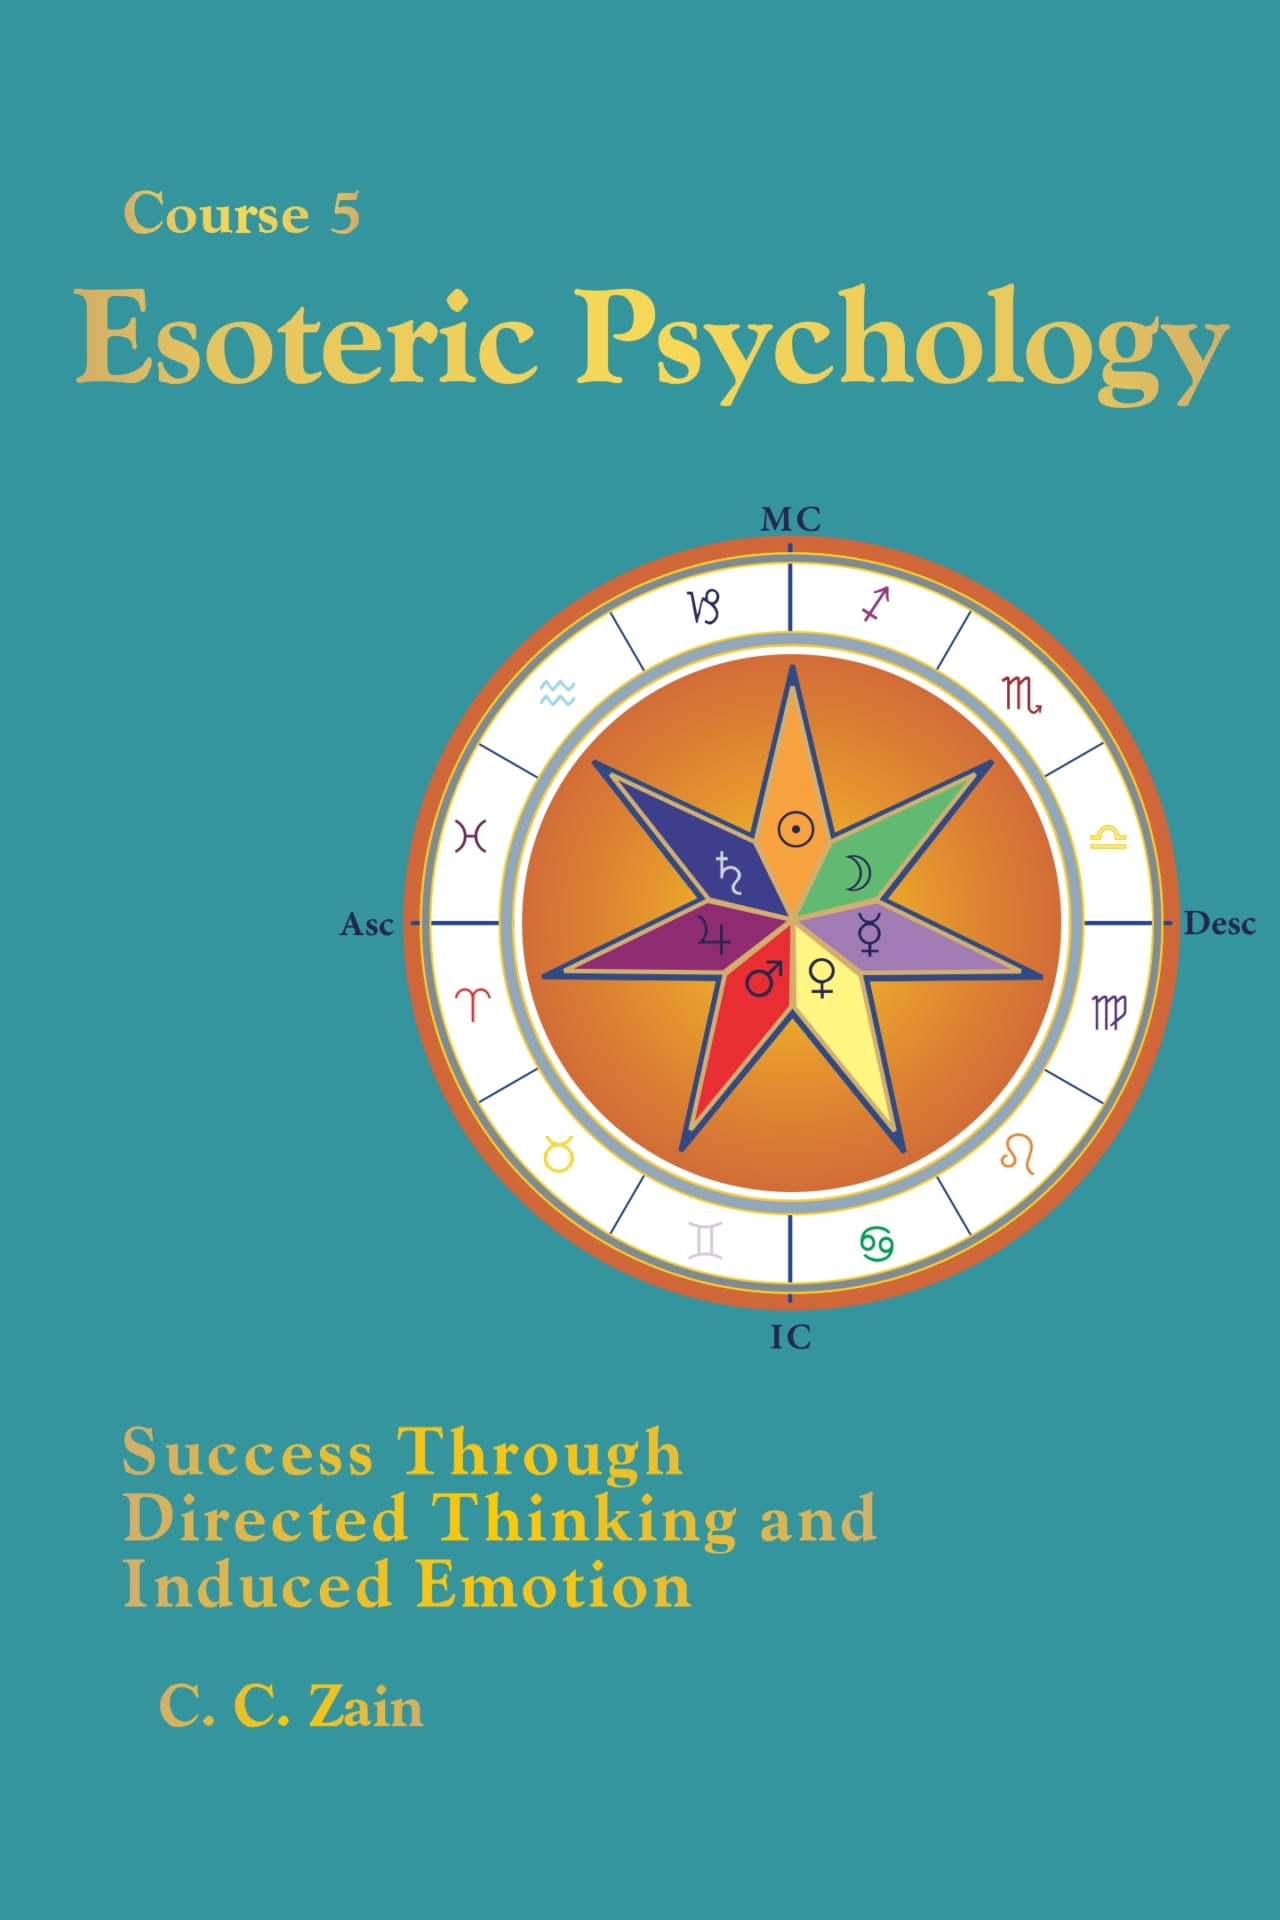 https://study.academyofhermeticarts.org/wp-content/uploads/2020/04/05_Esoteric_Psychology_eBook_Cover-1280x1920.jpg